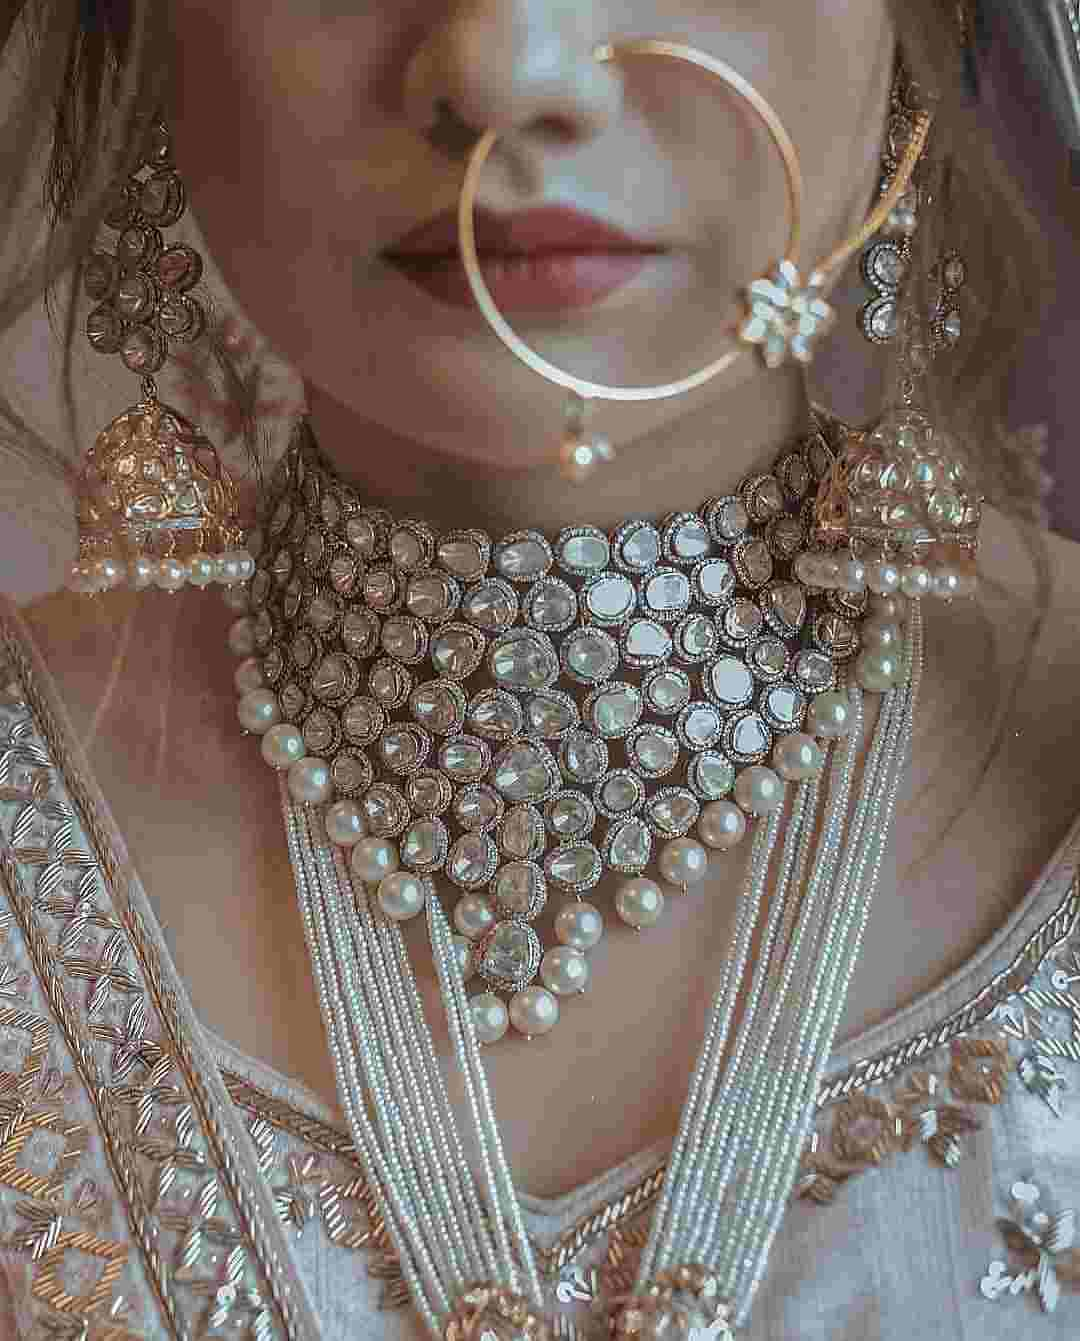 Bridal Jewelry | Bridal Naath | Nath | Bridal necklace | Bridal Jewelry